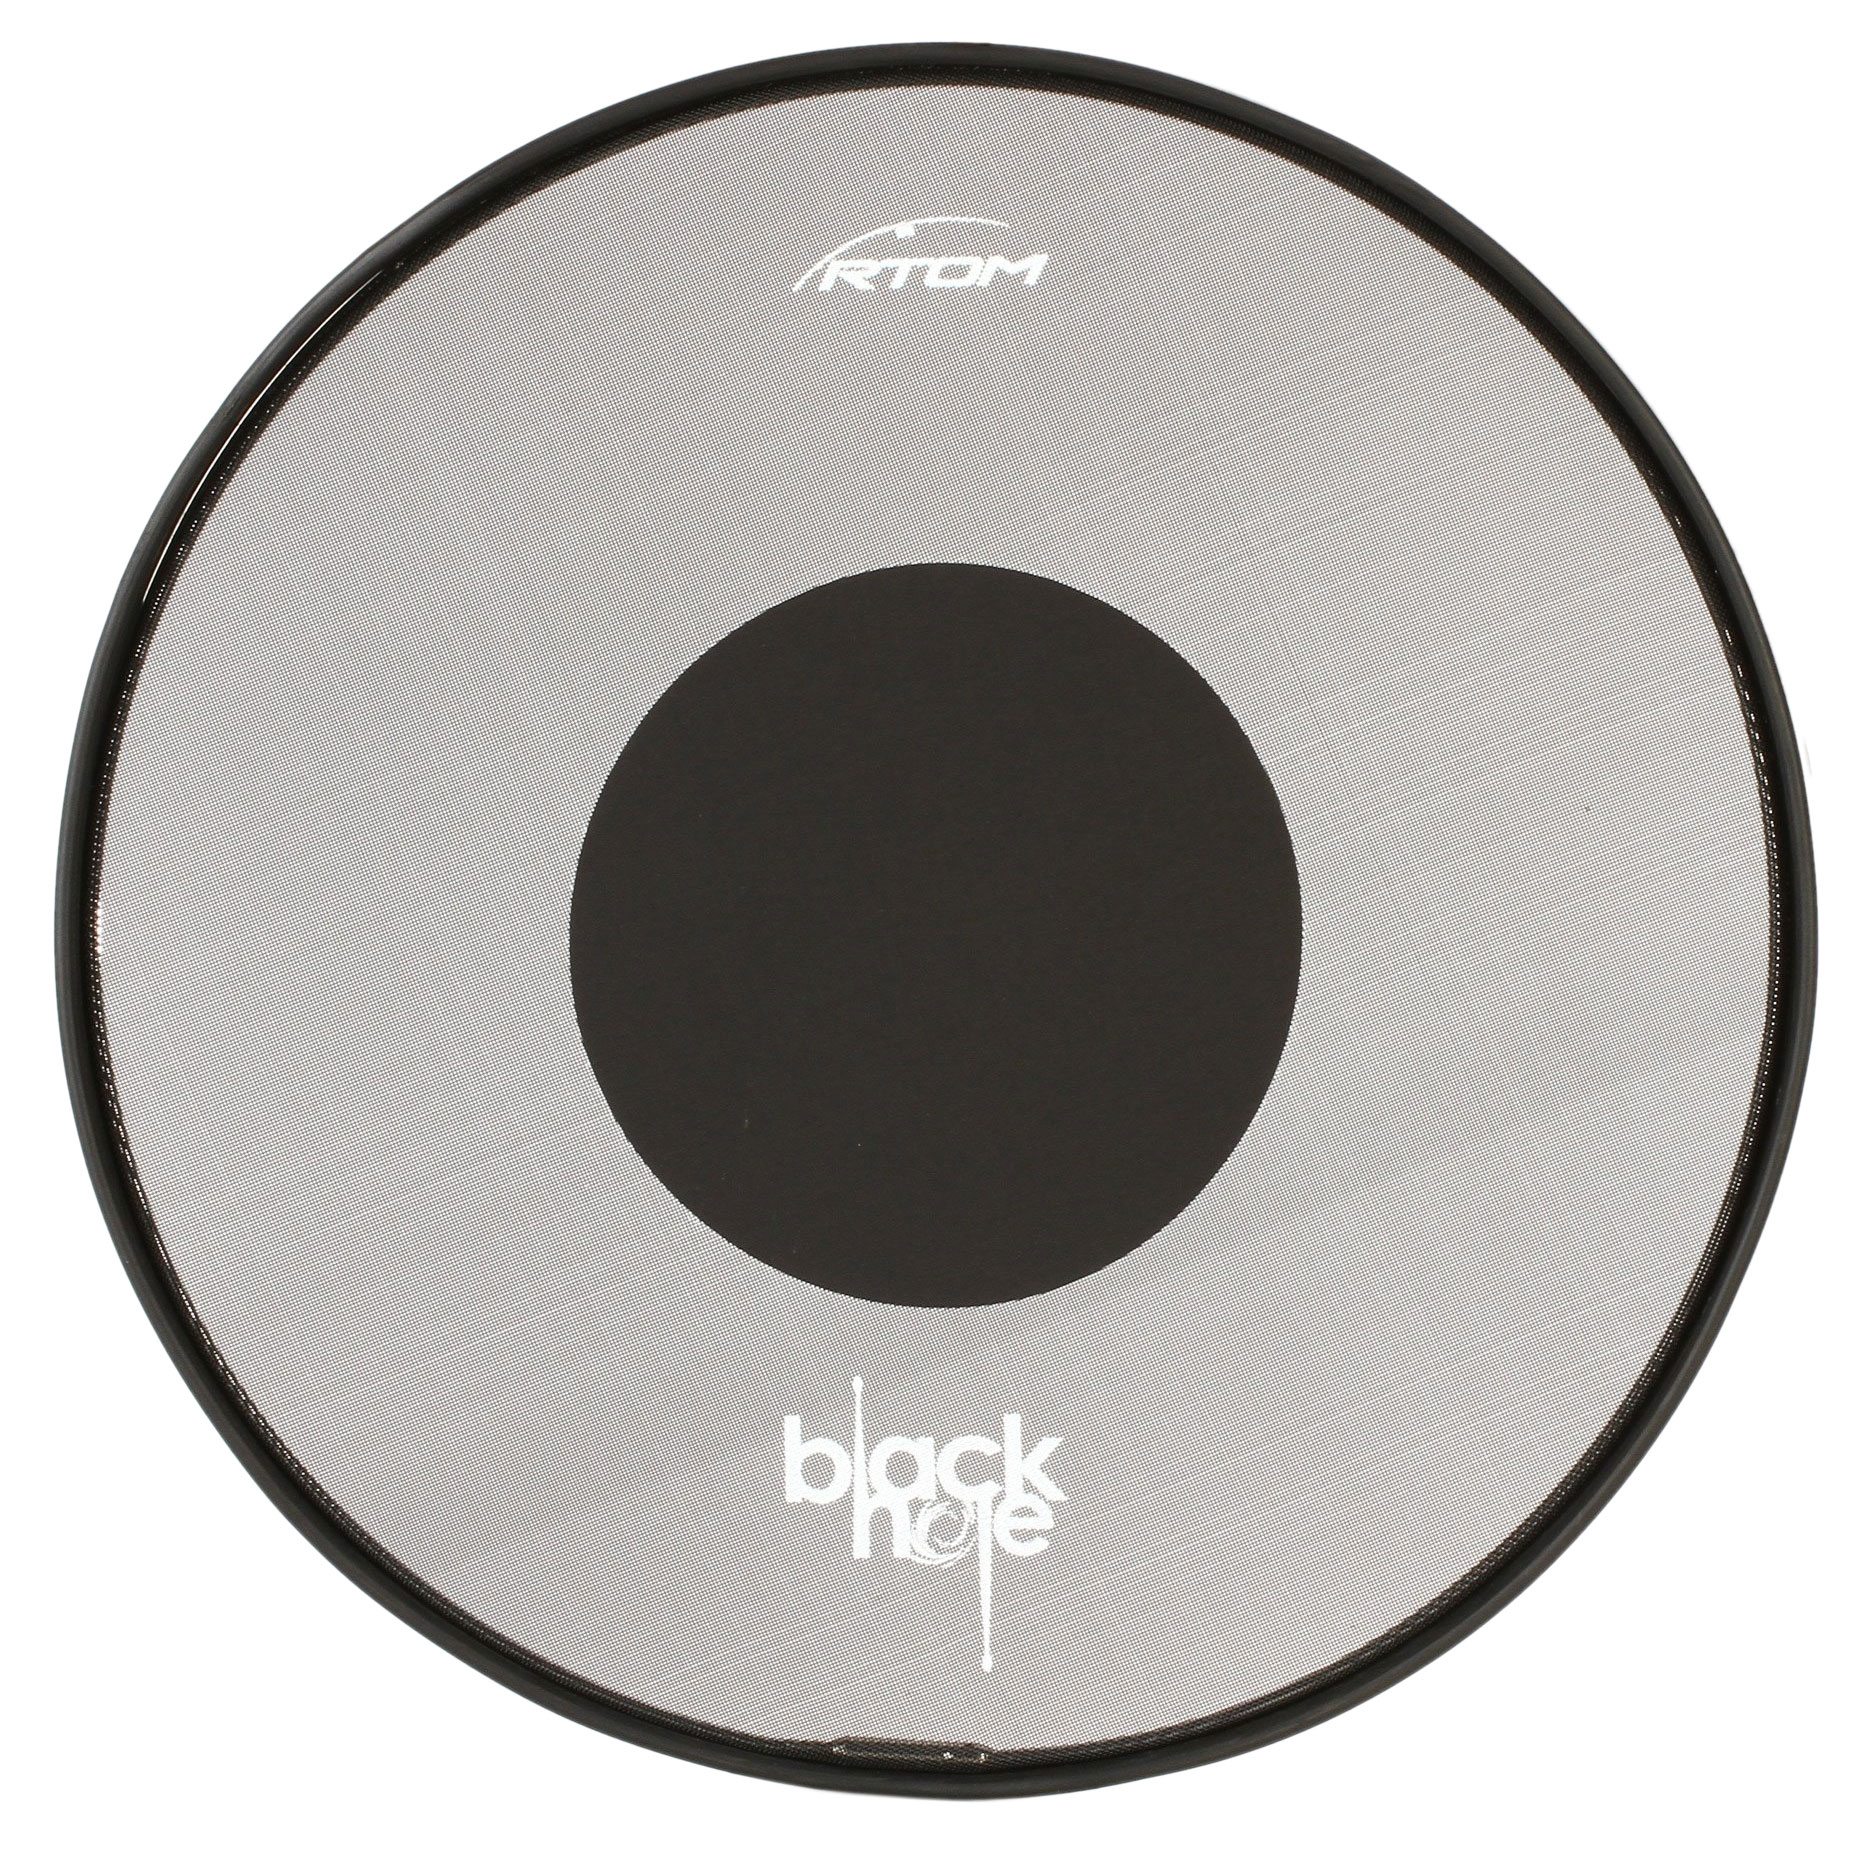 "RTOM 20"" Black Hole Snap-On Bass Drum Practice Pad"